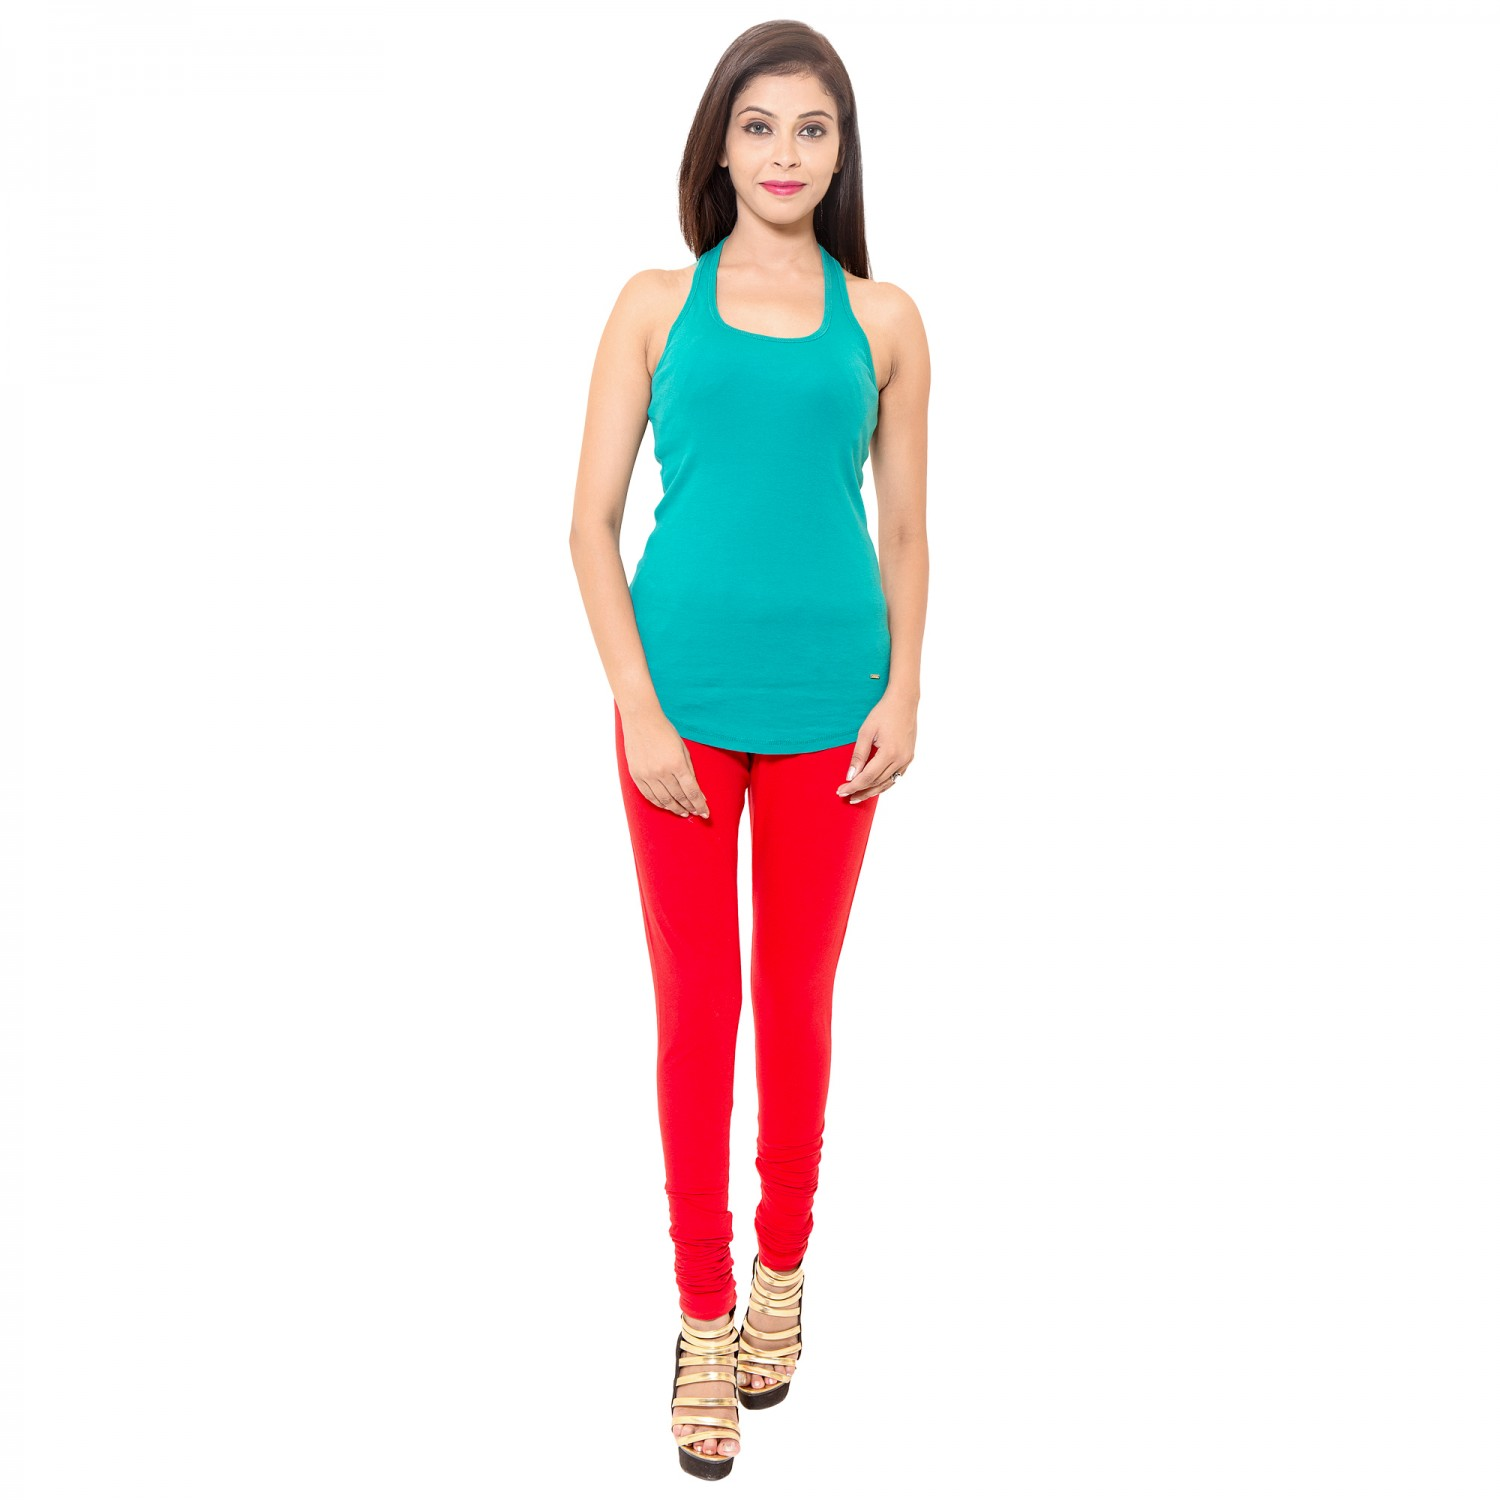 984135b6c24a7 Chudidar Cotton Lycra Leggings | Leggings Online In India | Leggings For  Girls